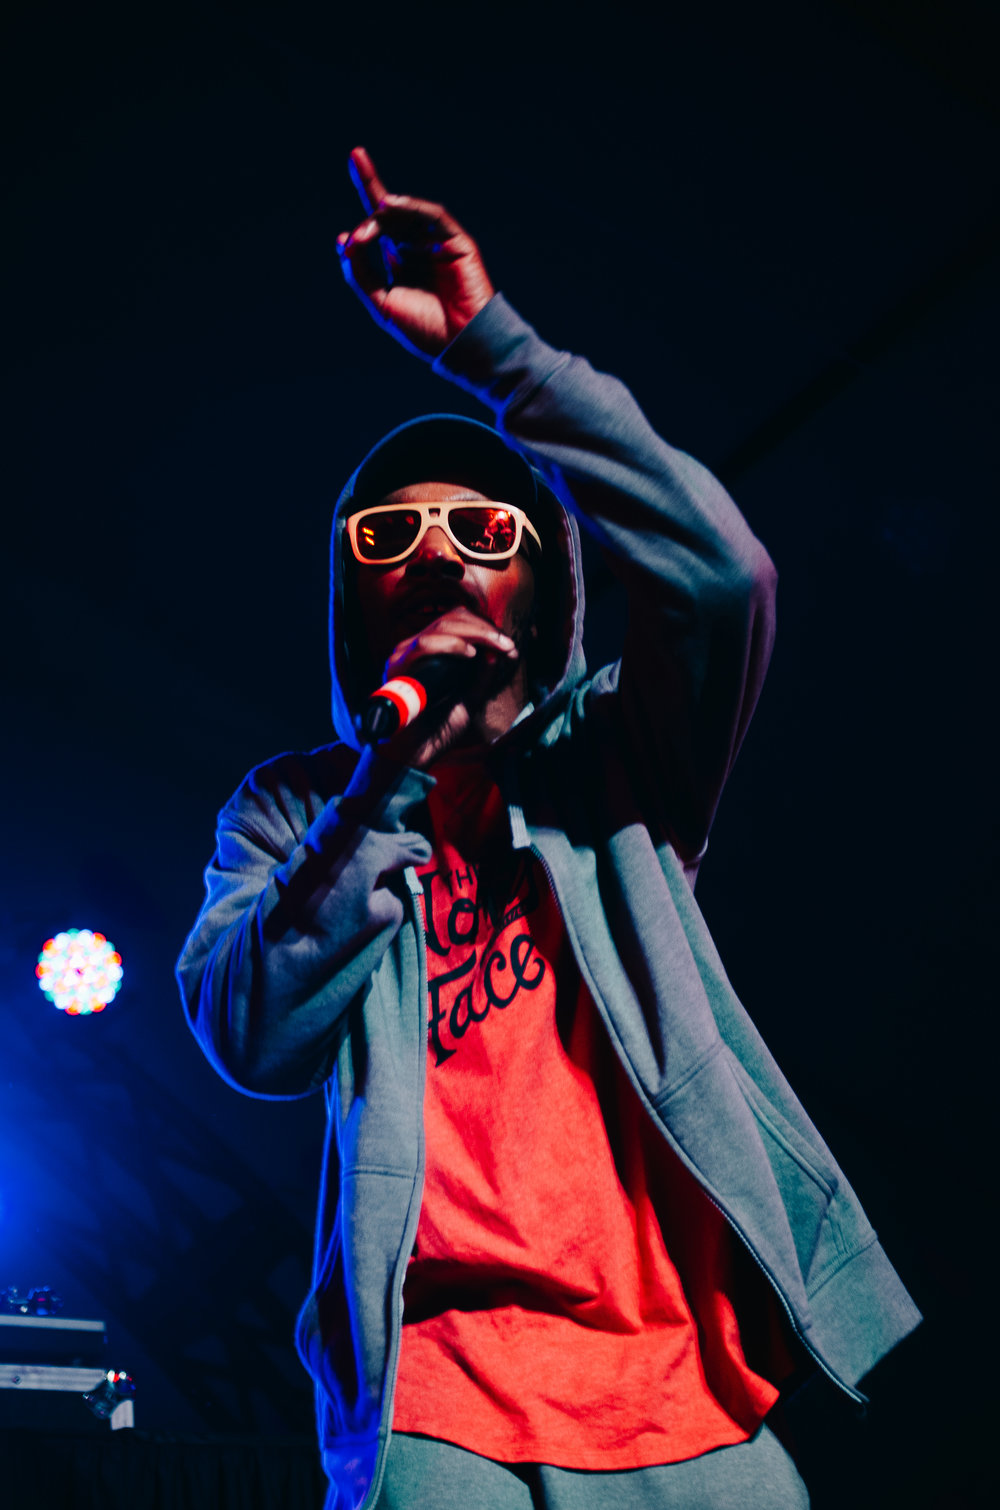 2_Del_the_Funky_Homosapien_Rifflandia-Timothy_Nguyen-20160917 (16 of 16).jpg